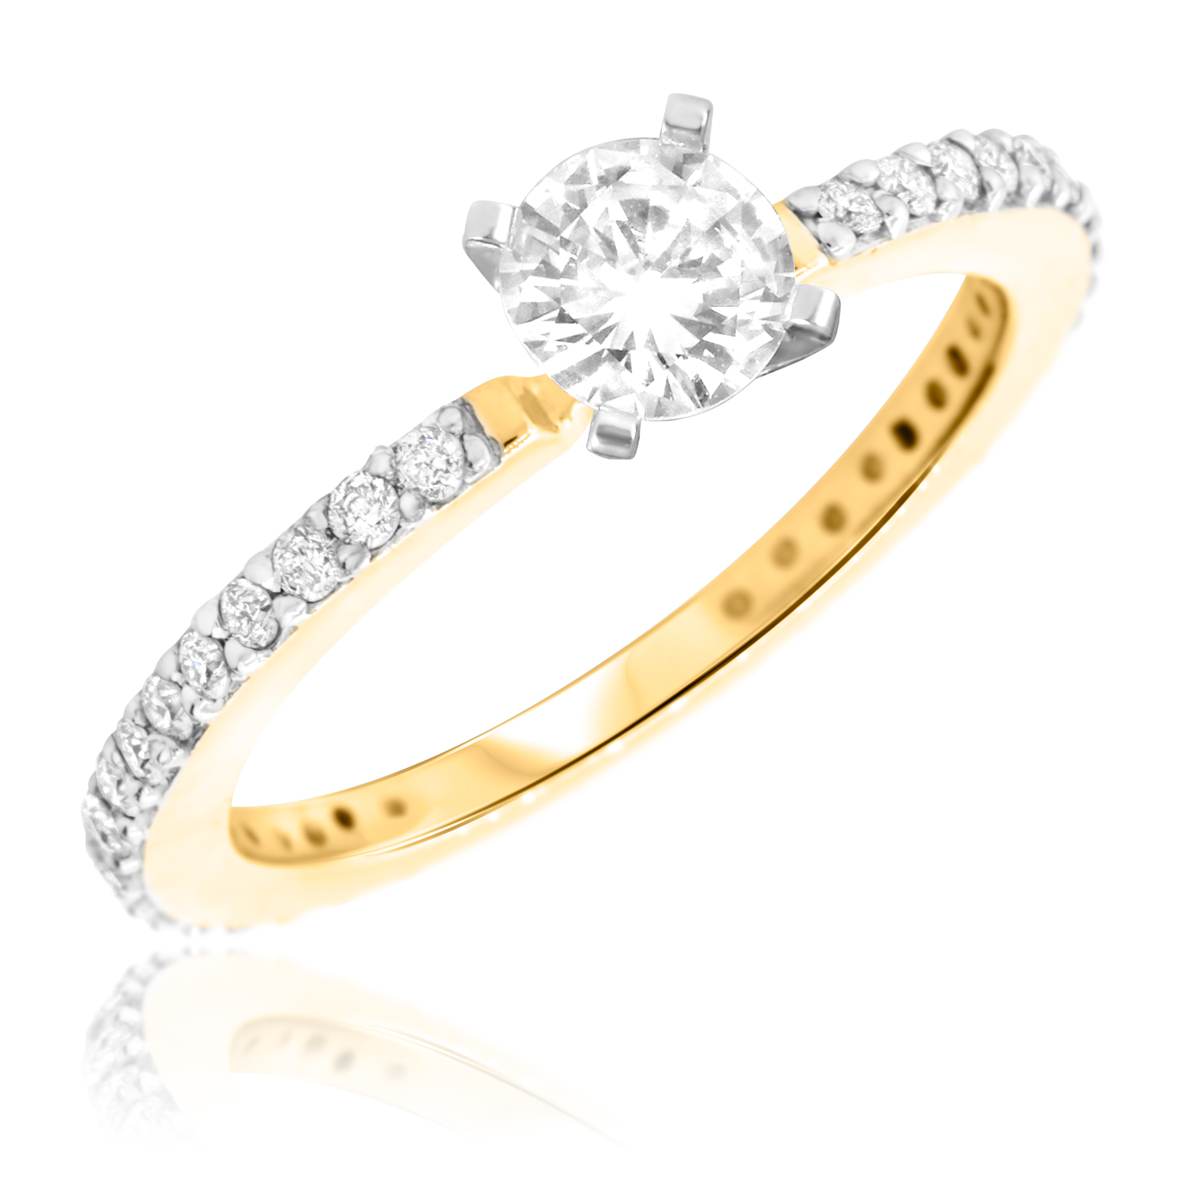 1 CT. T.W. Diamond Ladies Engagement Ring 10K Yellow Gold- Size 8